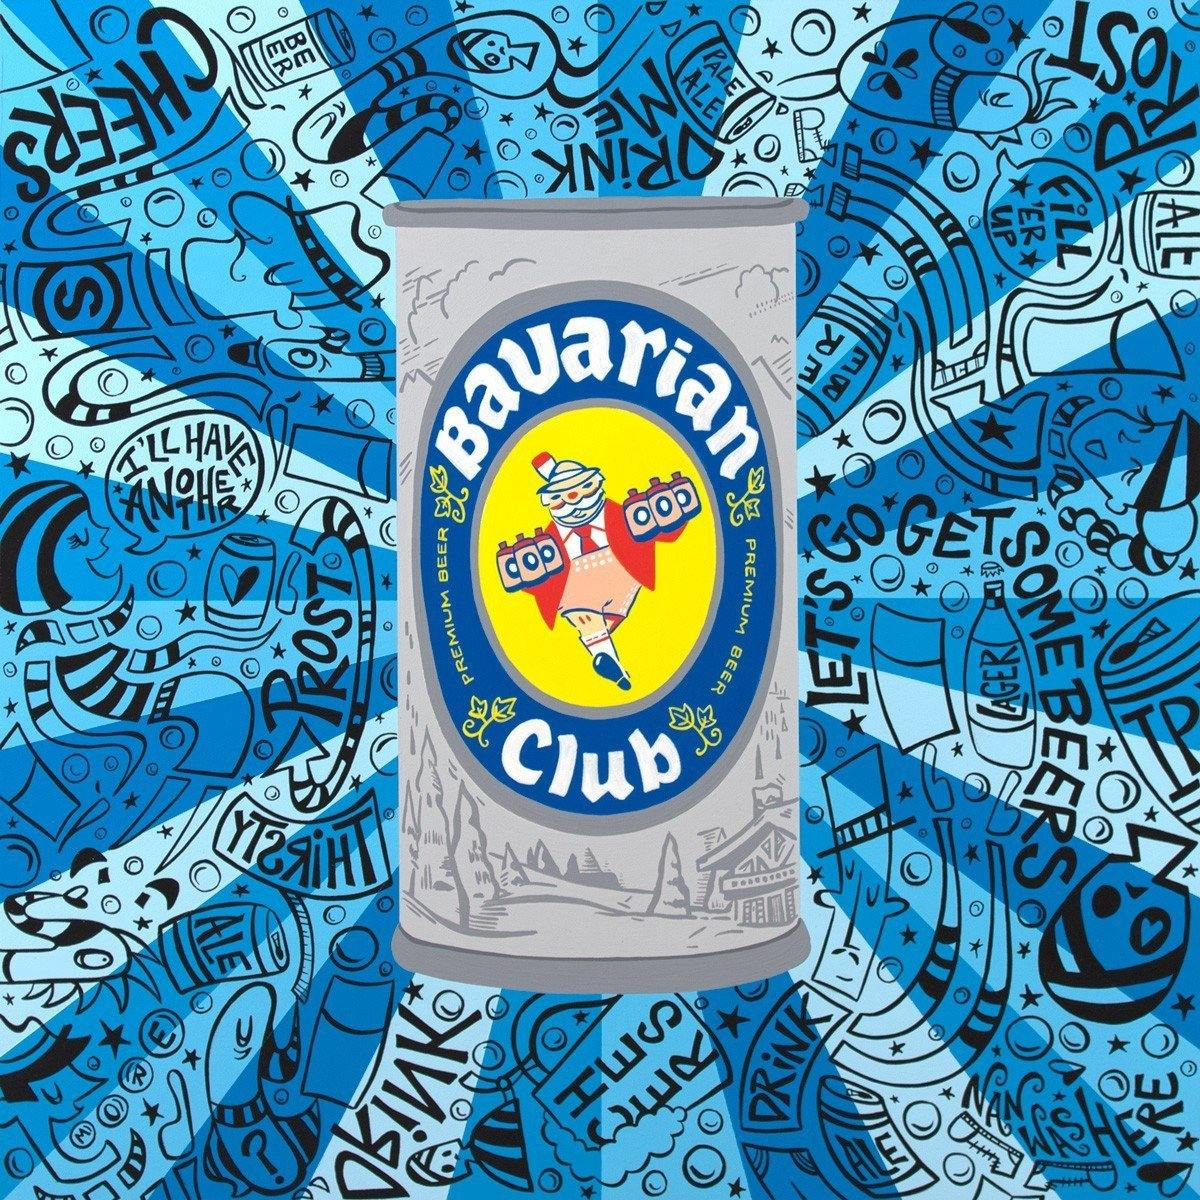 Bavarian Club Beer Can - Original | Fine Art and Limited Edition Prints | The Art Of Nan Coffey